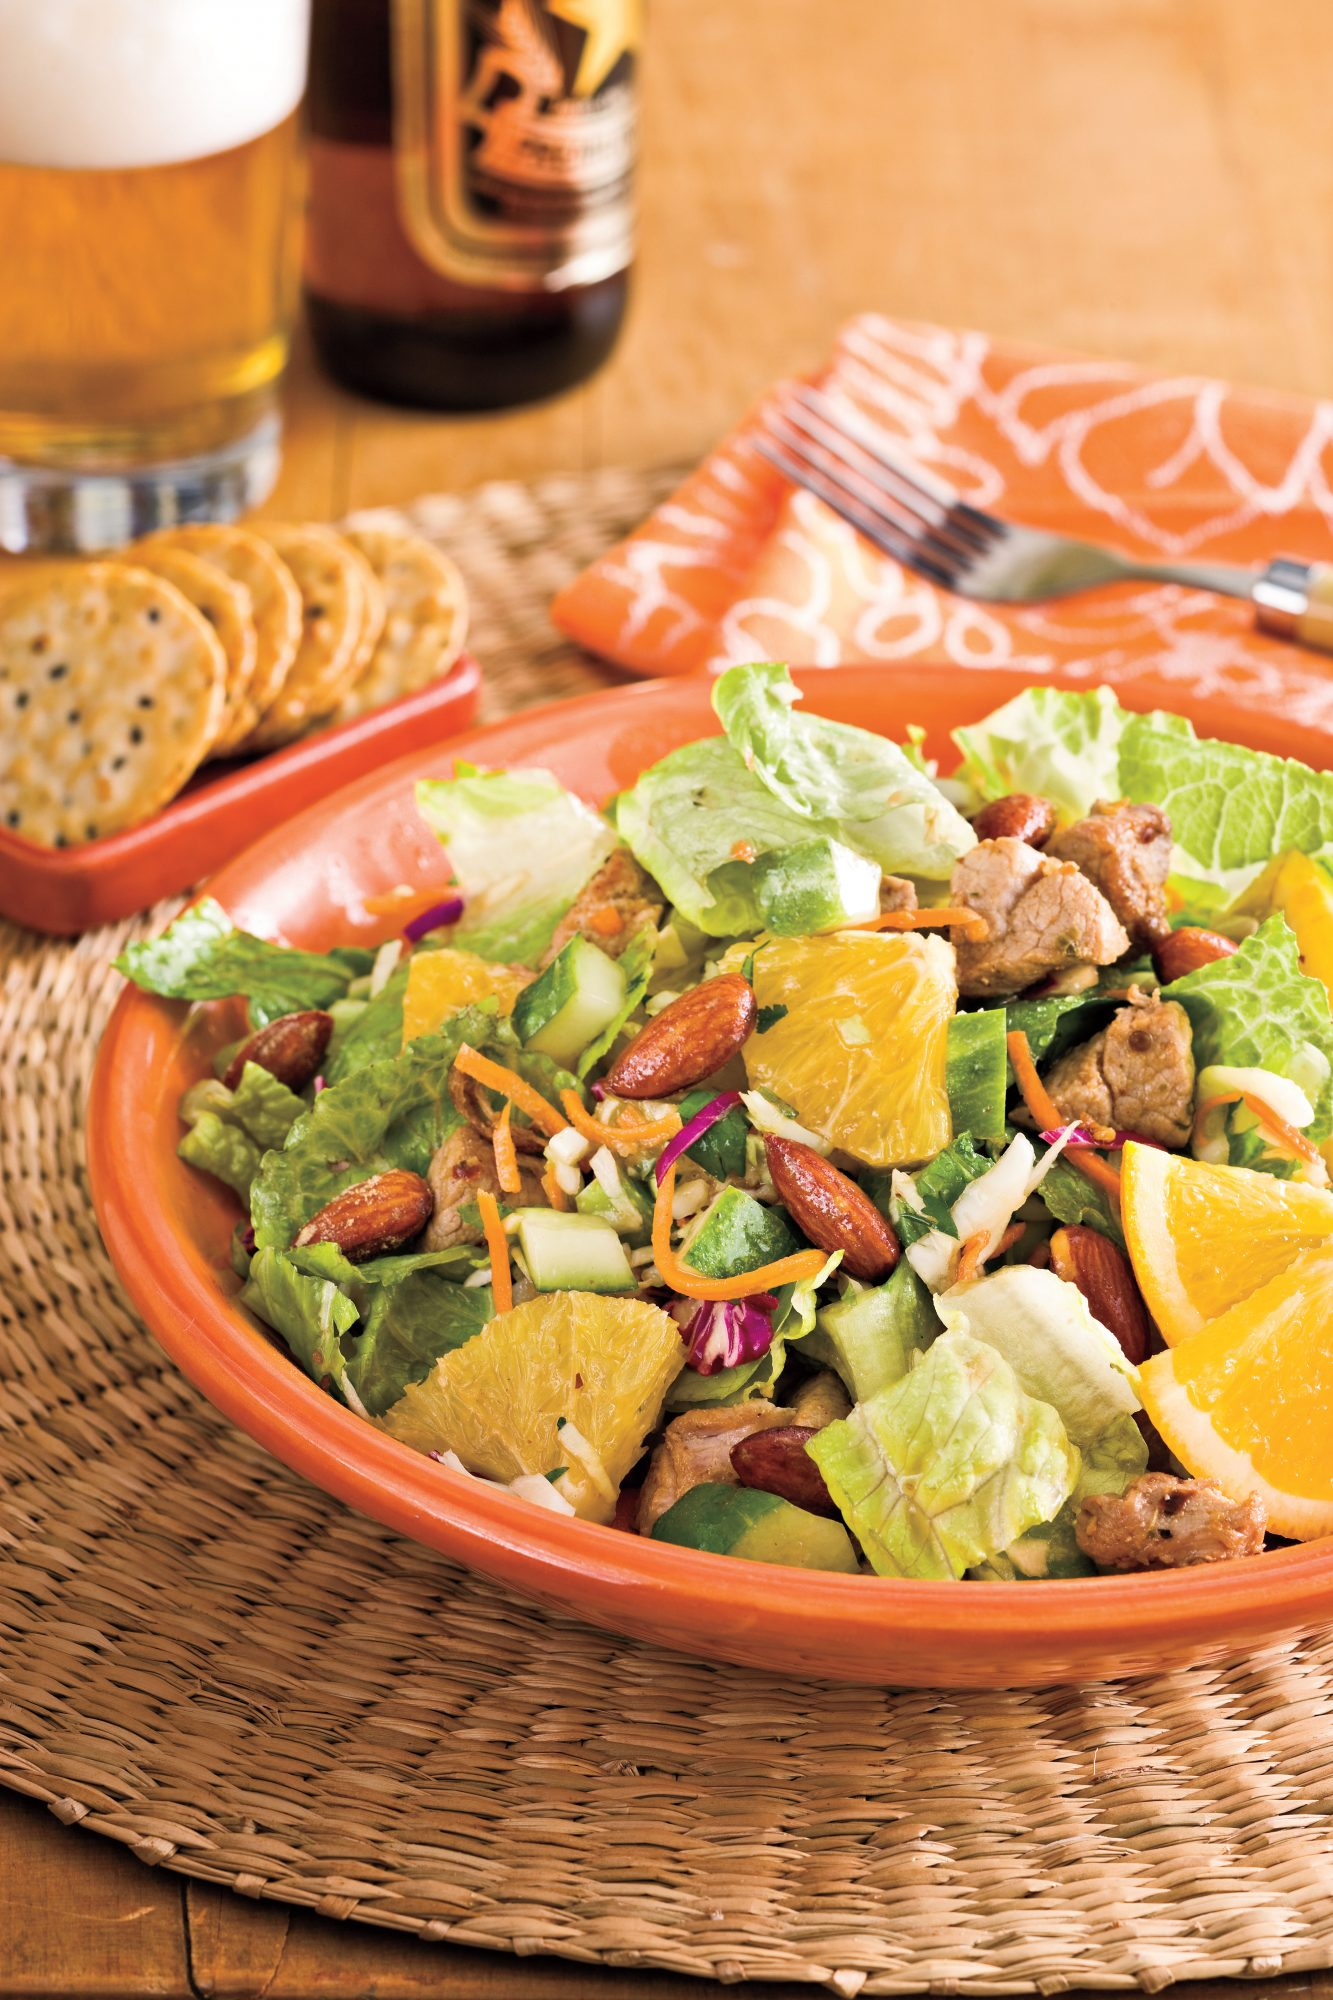 Spicy Pork-and-Orange Chopped Salad Recipes